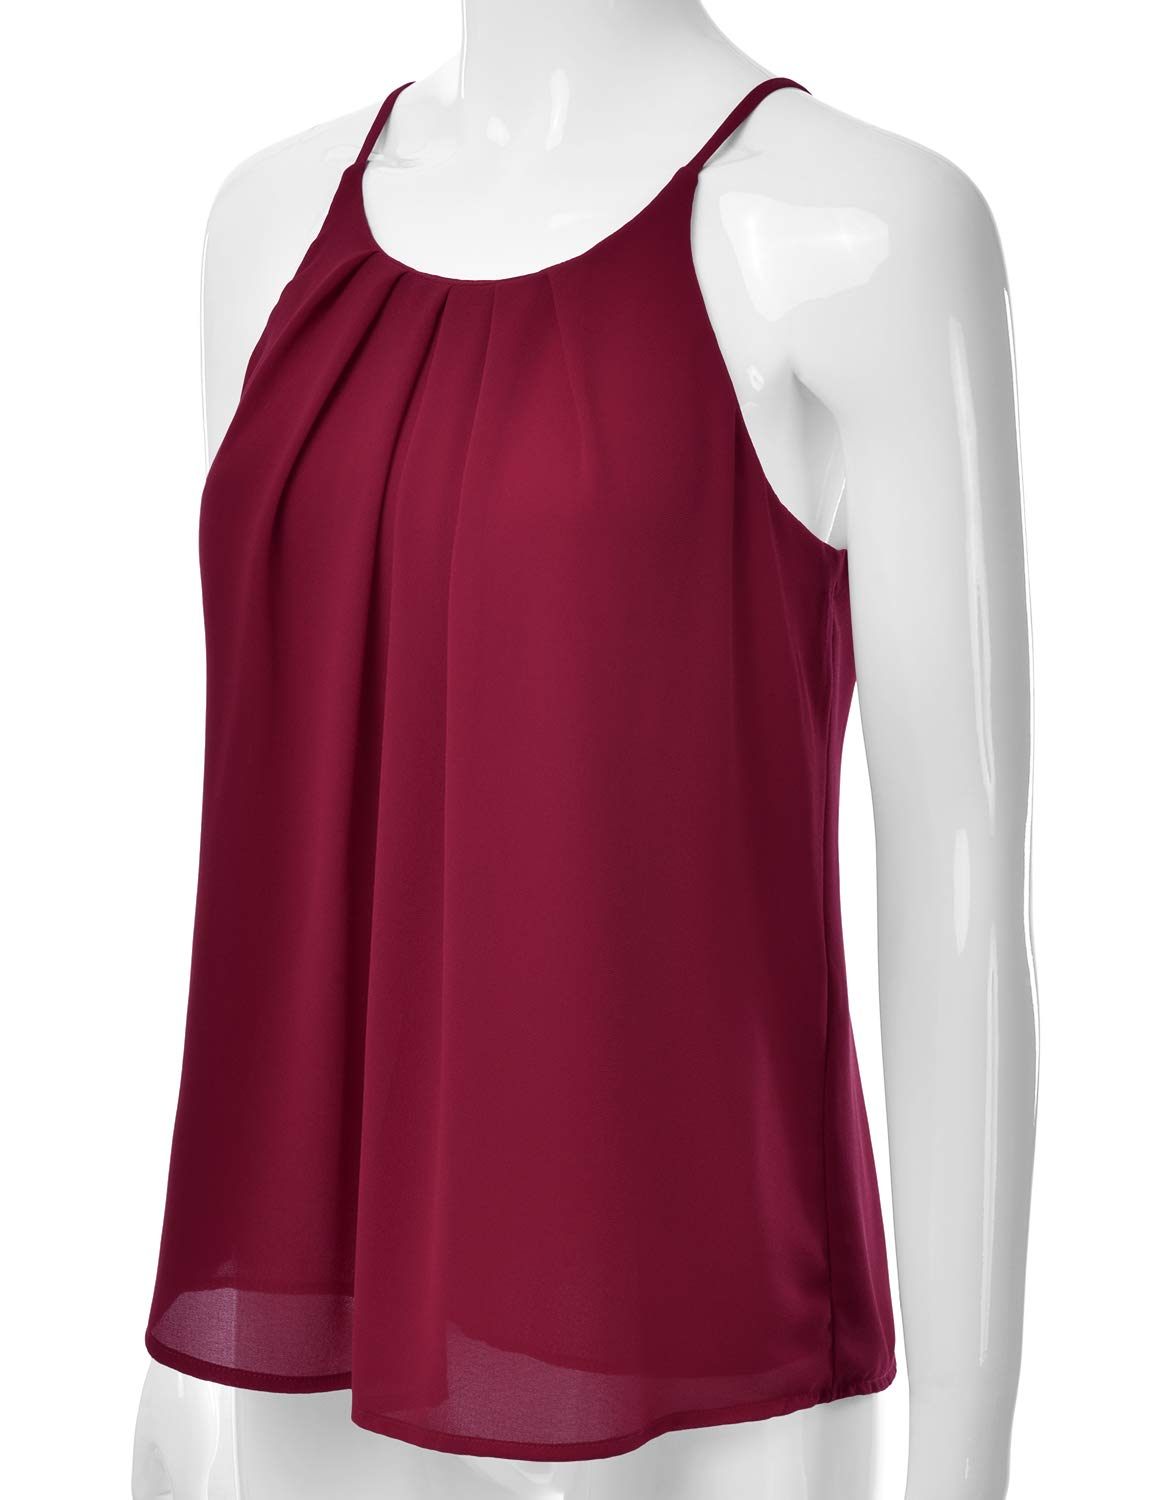 EIMIN Women's Crewneck Pleated Front Double Layered Chiffon Cami Tank Top Burgundy M by EIMIN (Image #2)